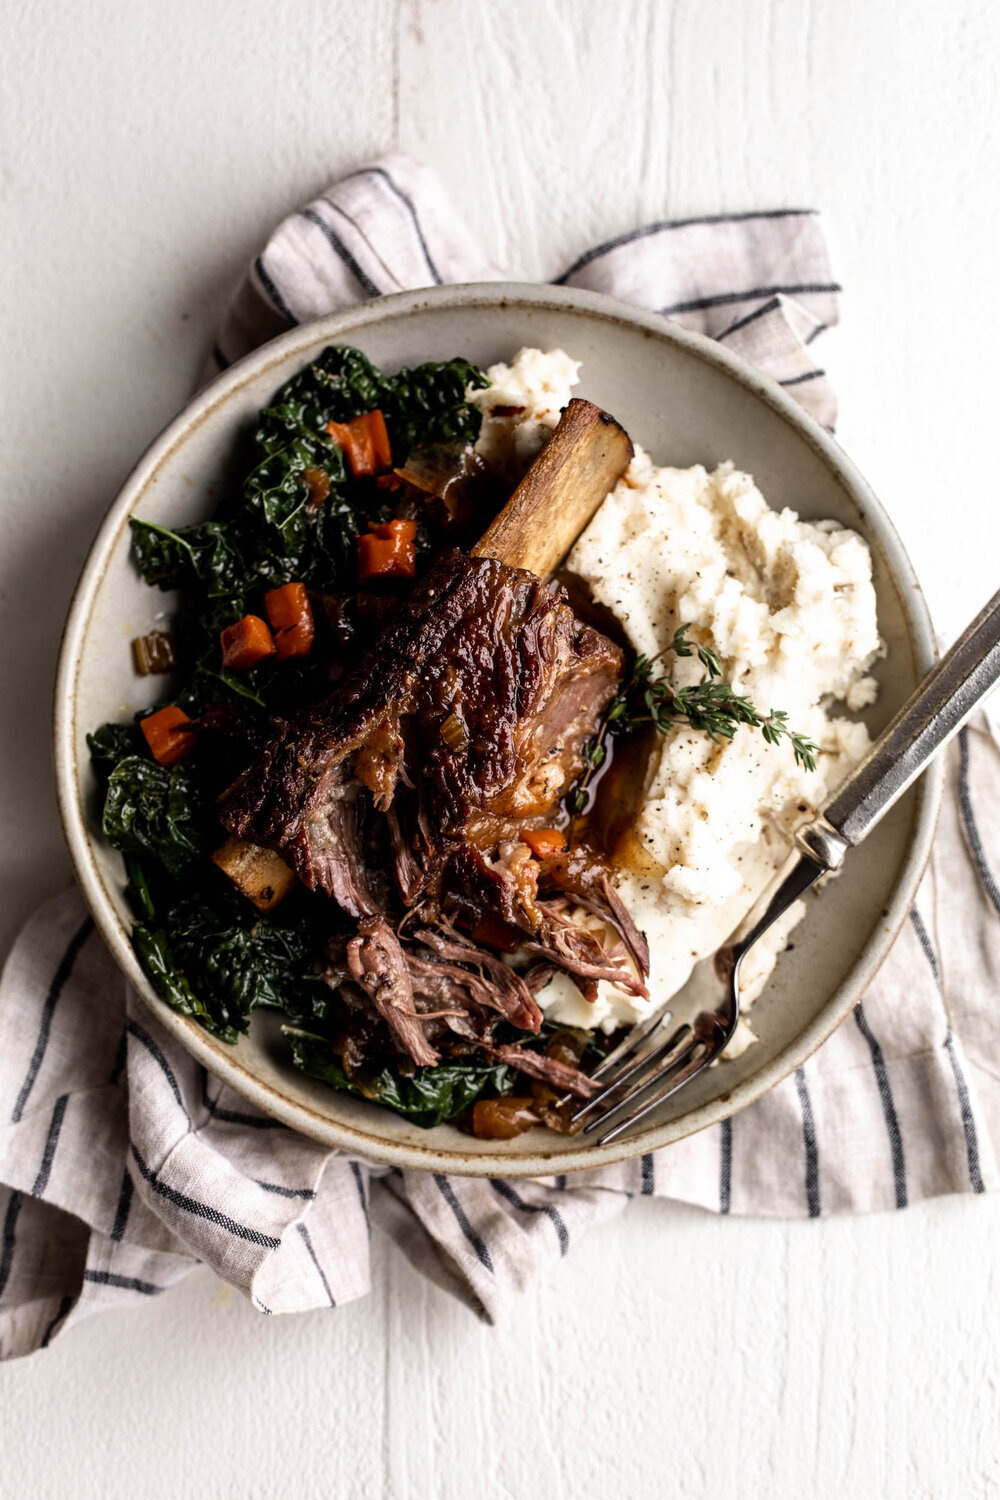 Maple Bourbon Braised Short Ribs with Caramelized Shallot and Black Pepper Mashed Potatoes